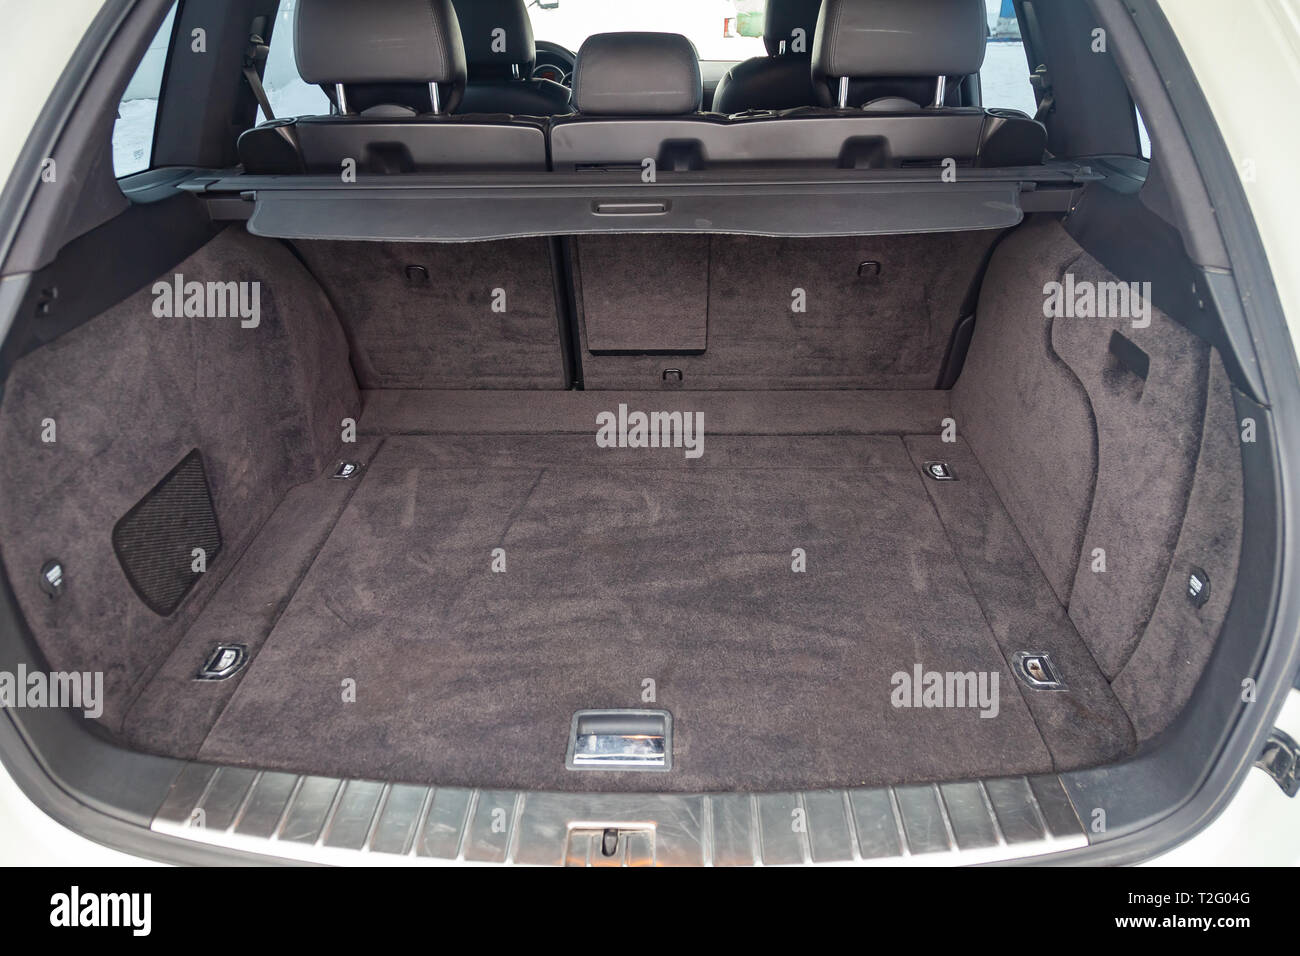 Novosibirsk, Russia - 03.10.2019: View to the interior of Porsche Cayenne 957 2007 with opened bagпage trunk after cleaning before sale on parking - Stock Image